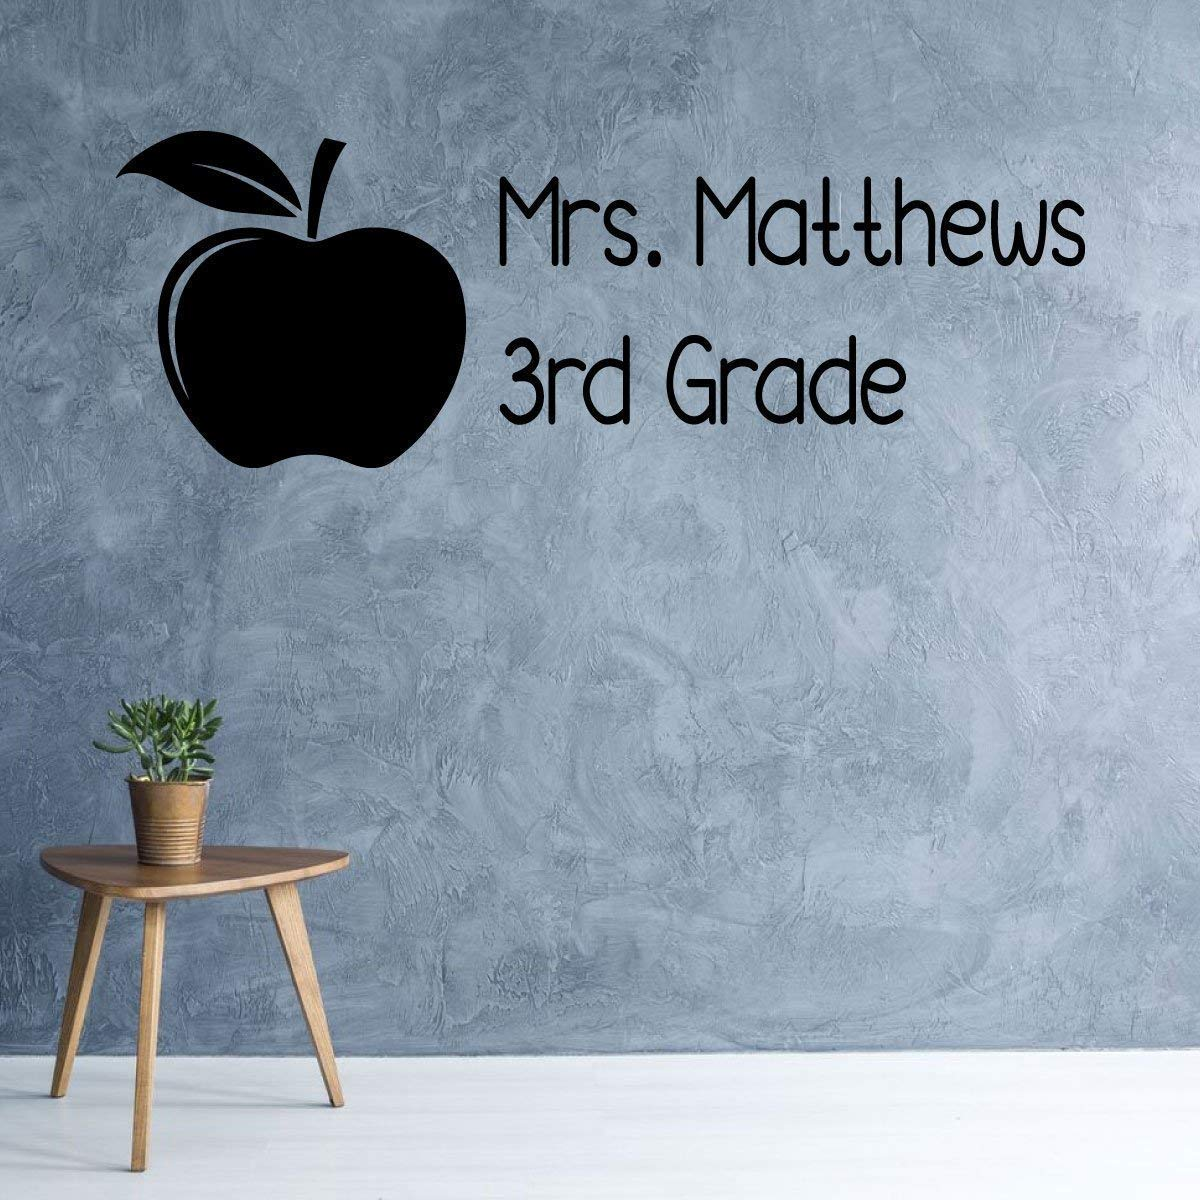 Personalized Name Teacher Decoration Gift | Customized Apple Silhouette Classroom Vinyl Wall Decal with Grade | Back to School Present | Black, White, Red, Purple, Other Colors | Small, Large Sizes